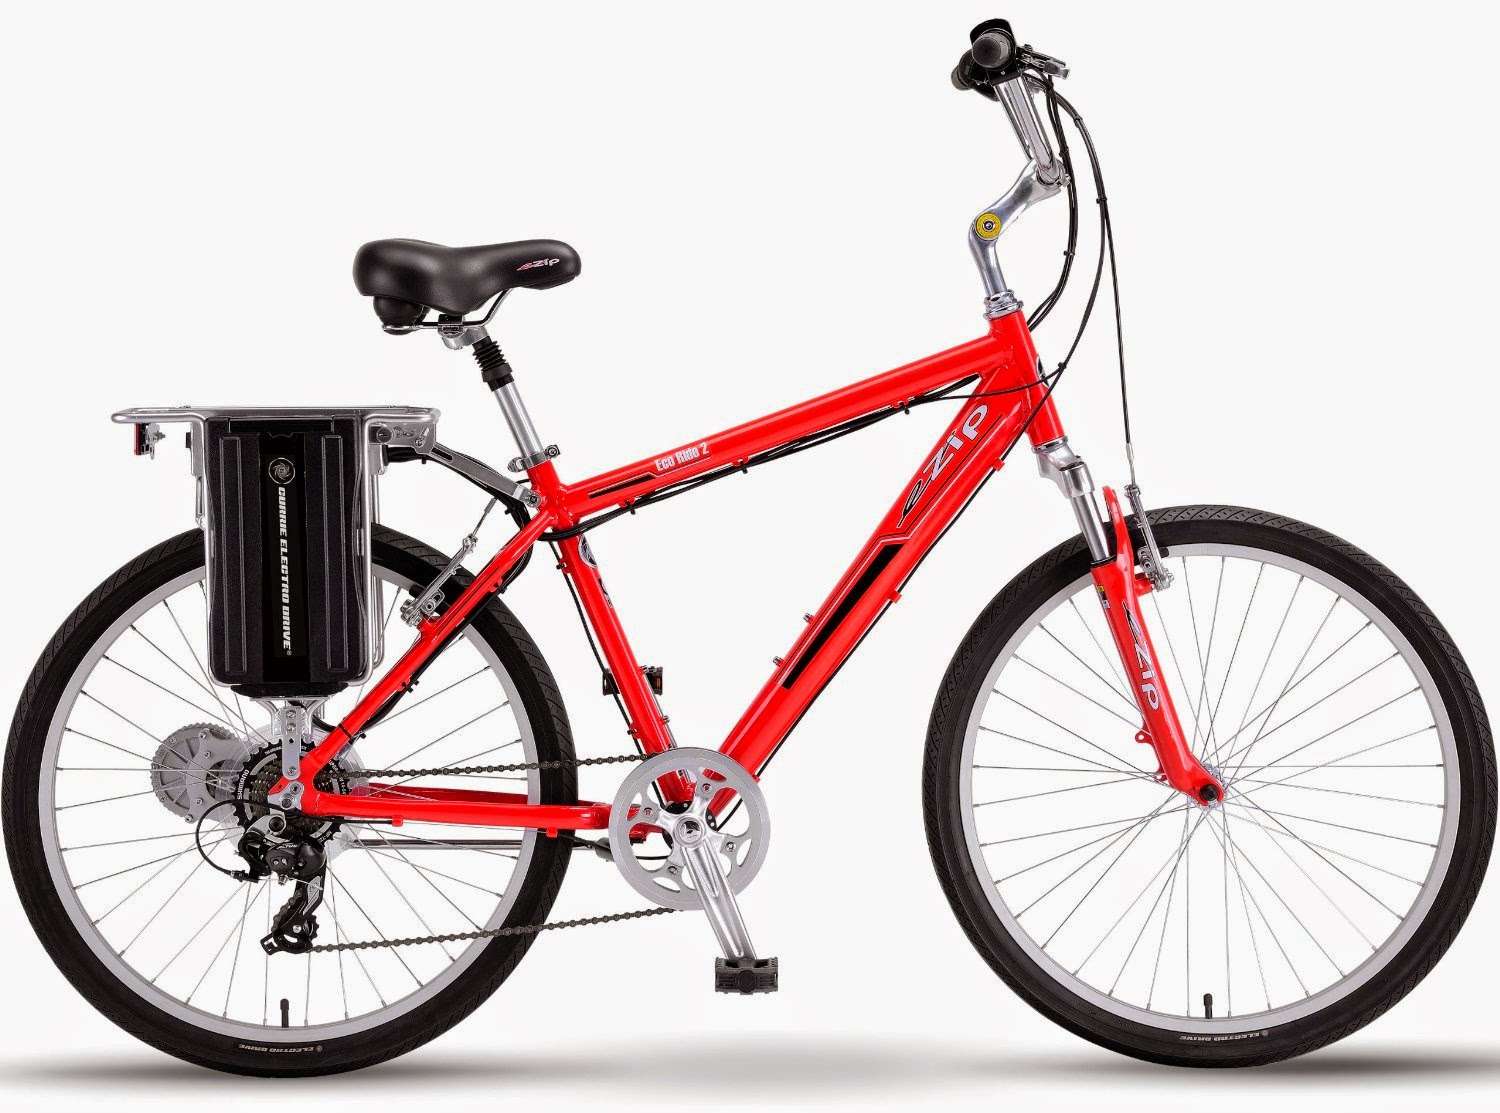 Men's eZip Eco-Ride-2 SLA Electric Bicycle, review, speeds up to 15 mph, distance range up to 22 miles